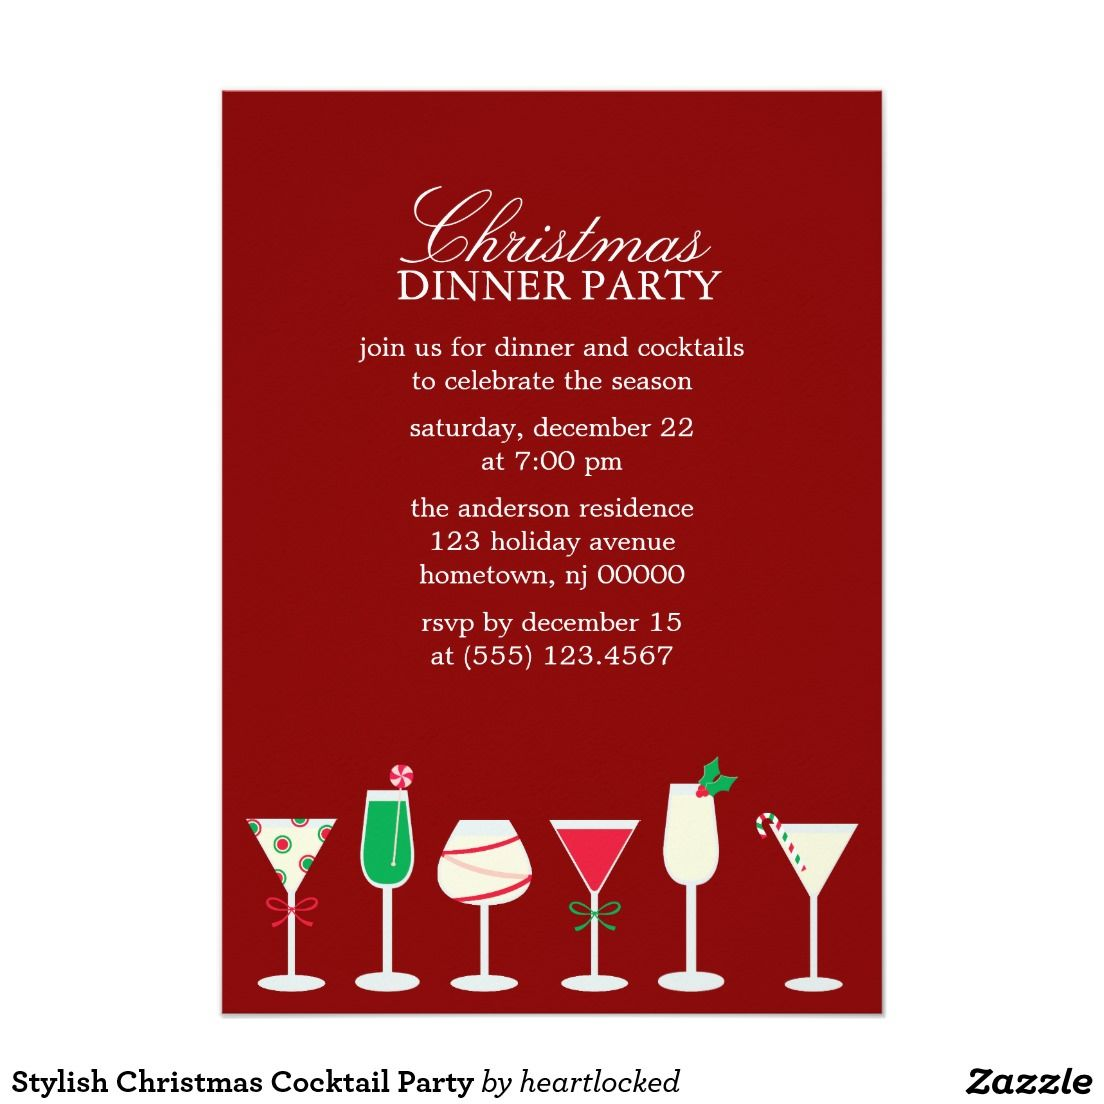 Stylish Christmas Cocktail Party Invitation Zazzle Com